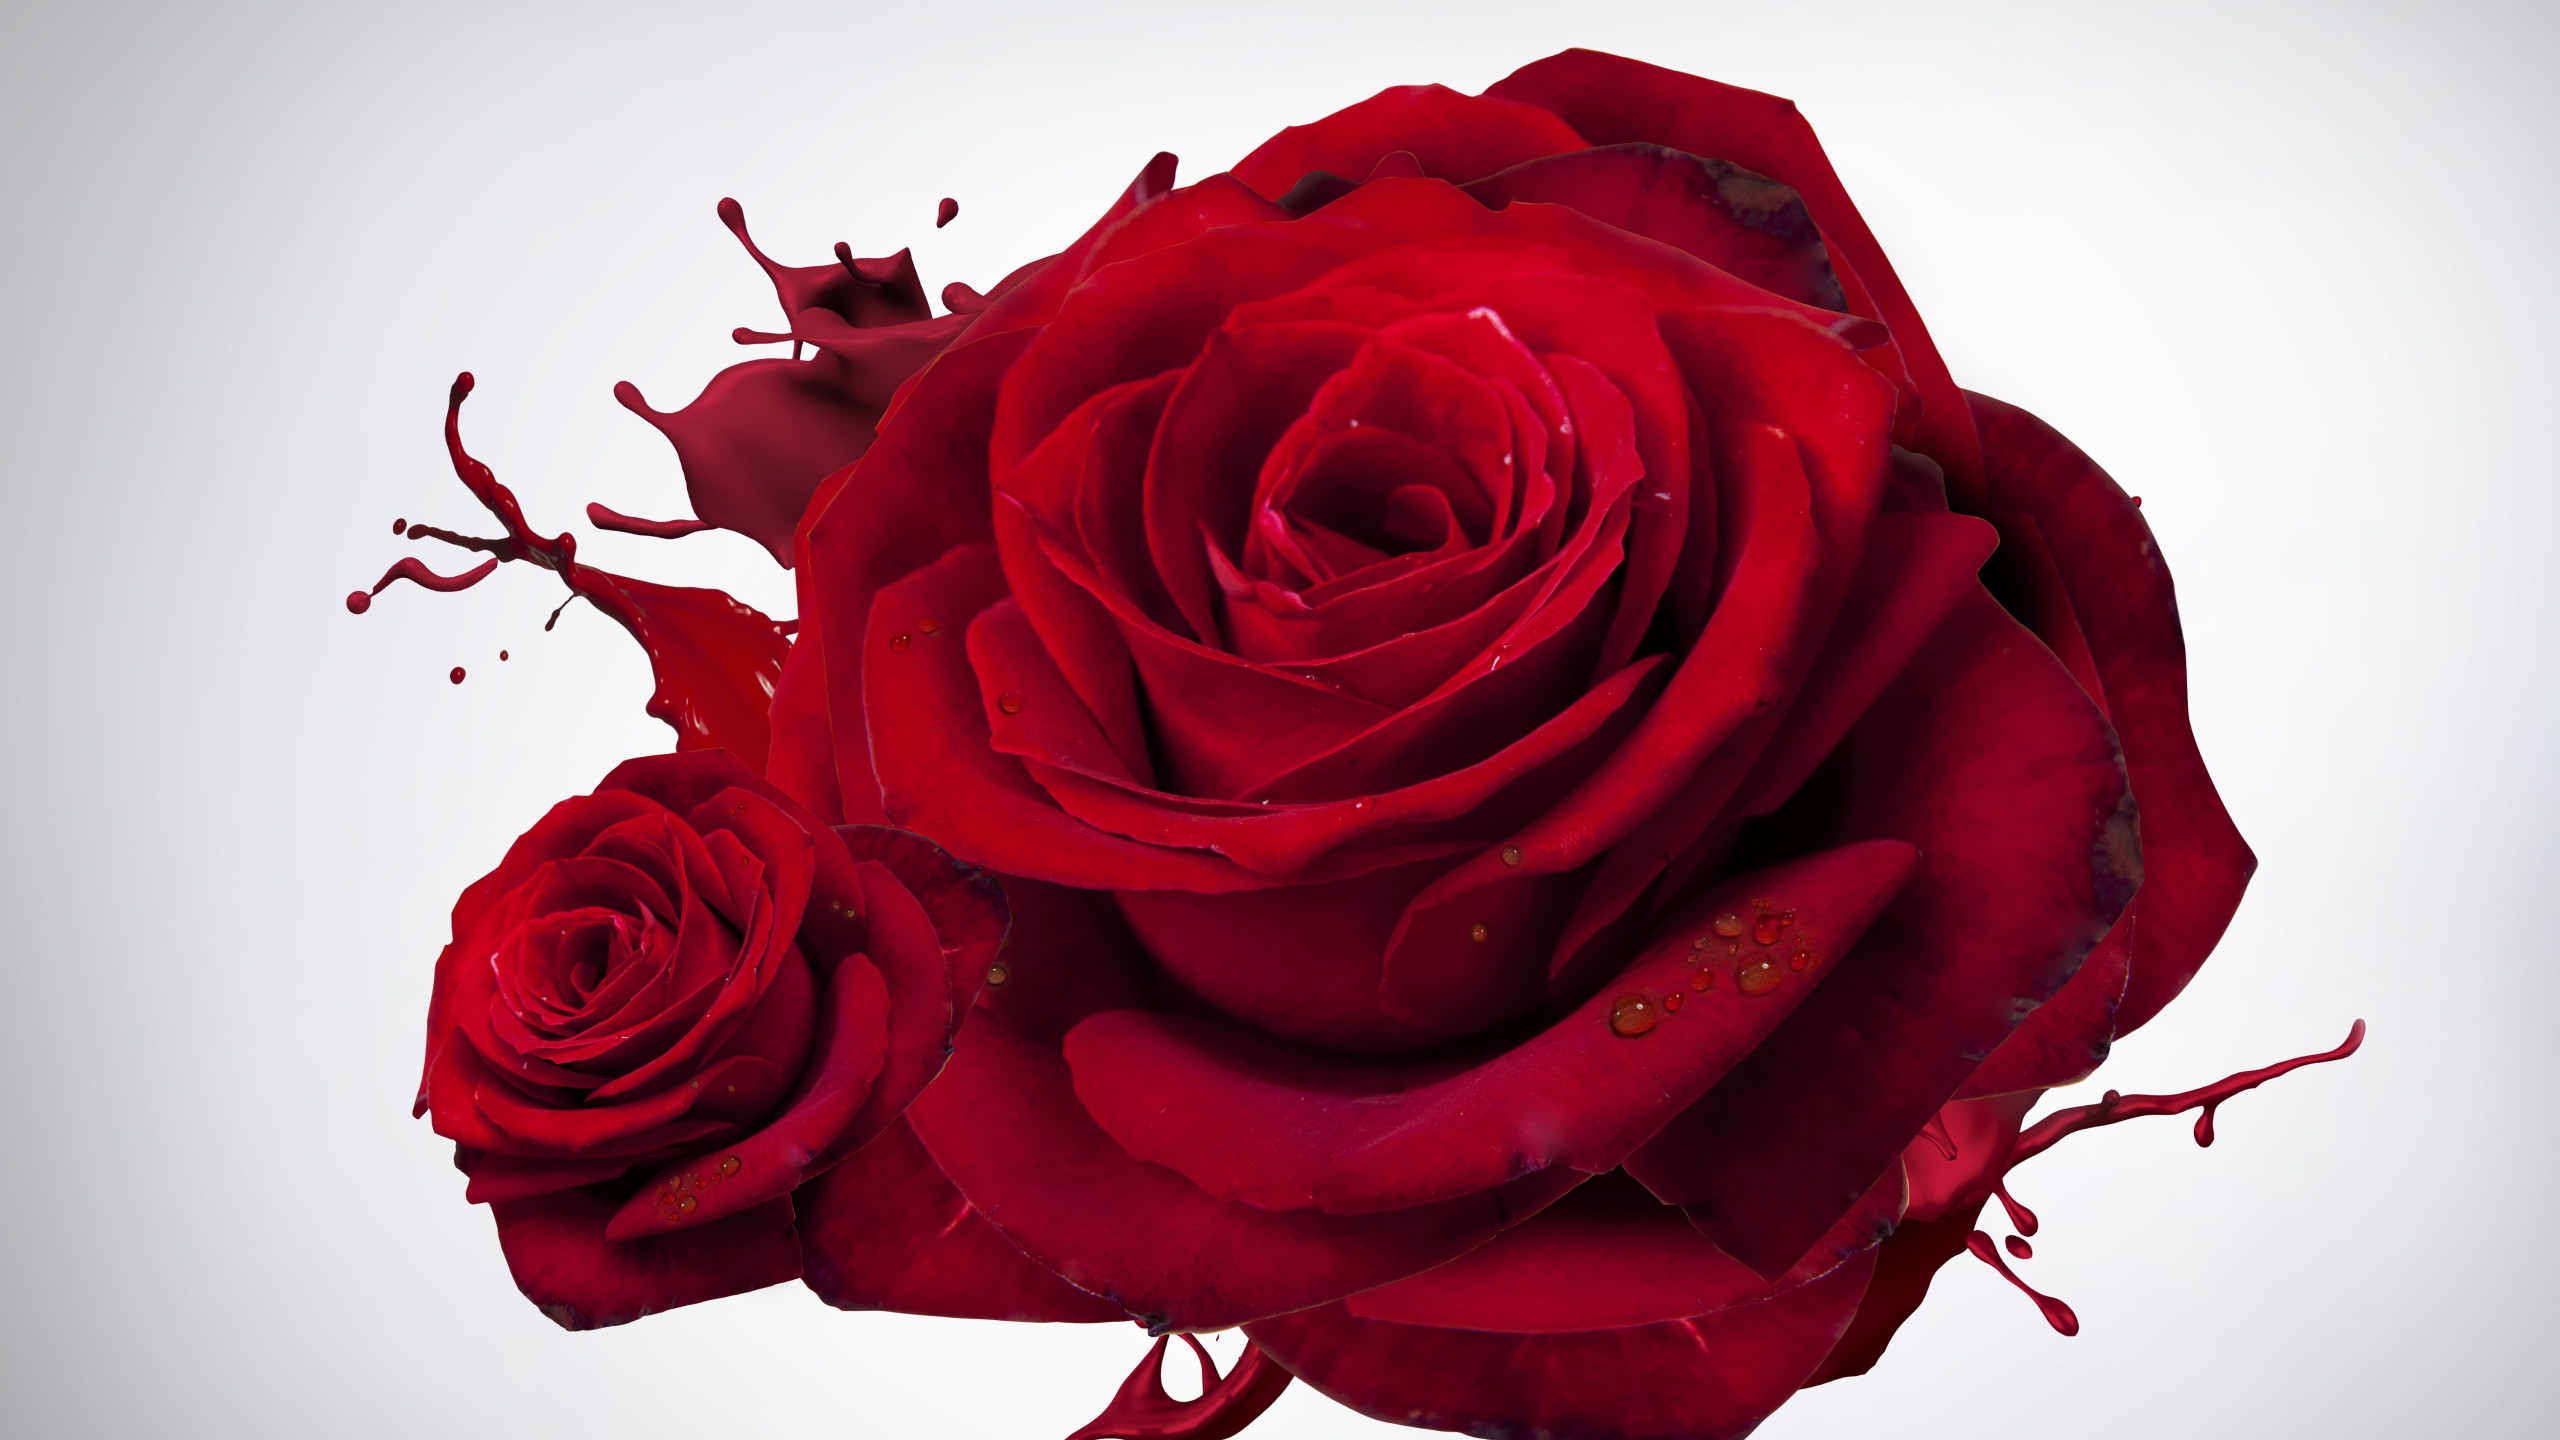 The most beautiful red roses wallpaper 2560x1440